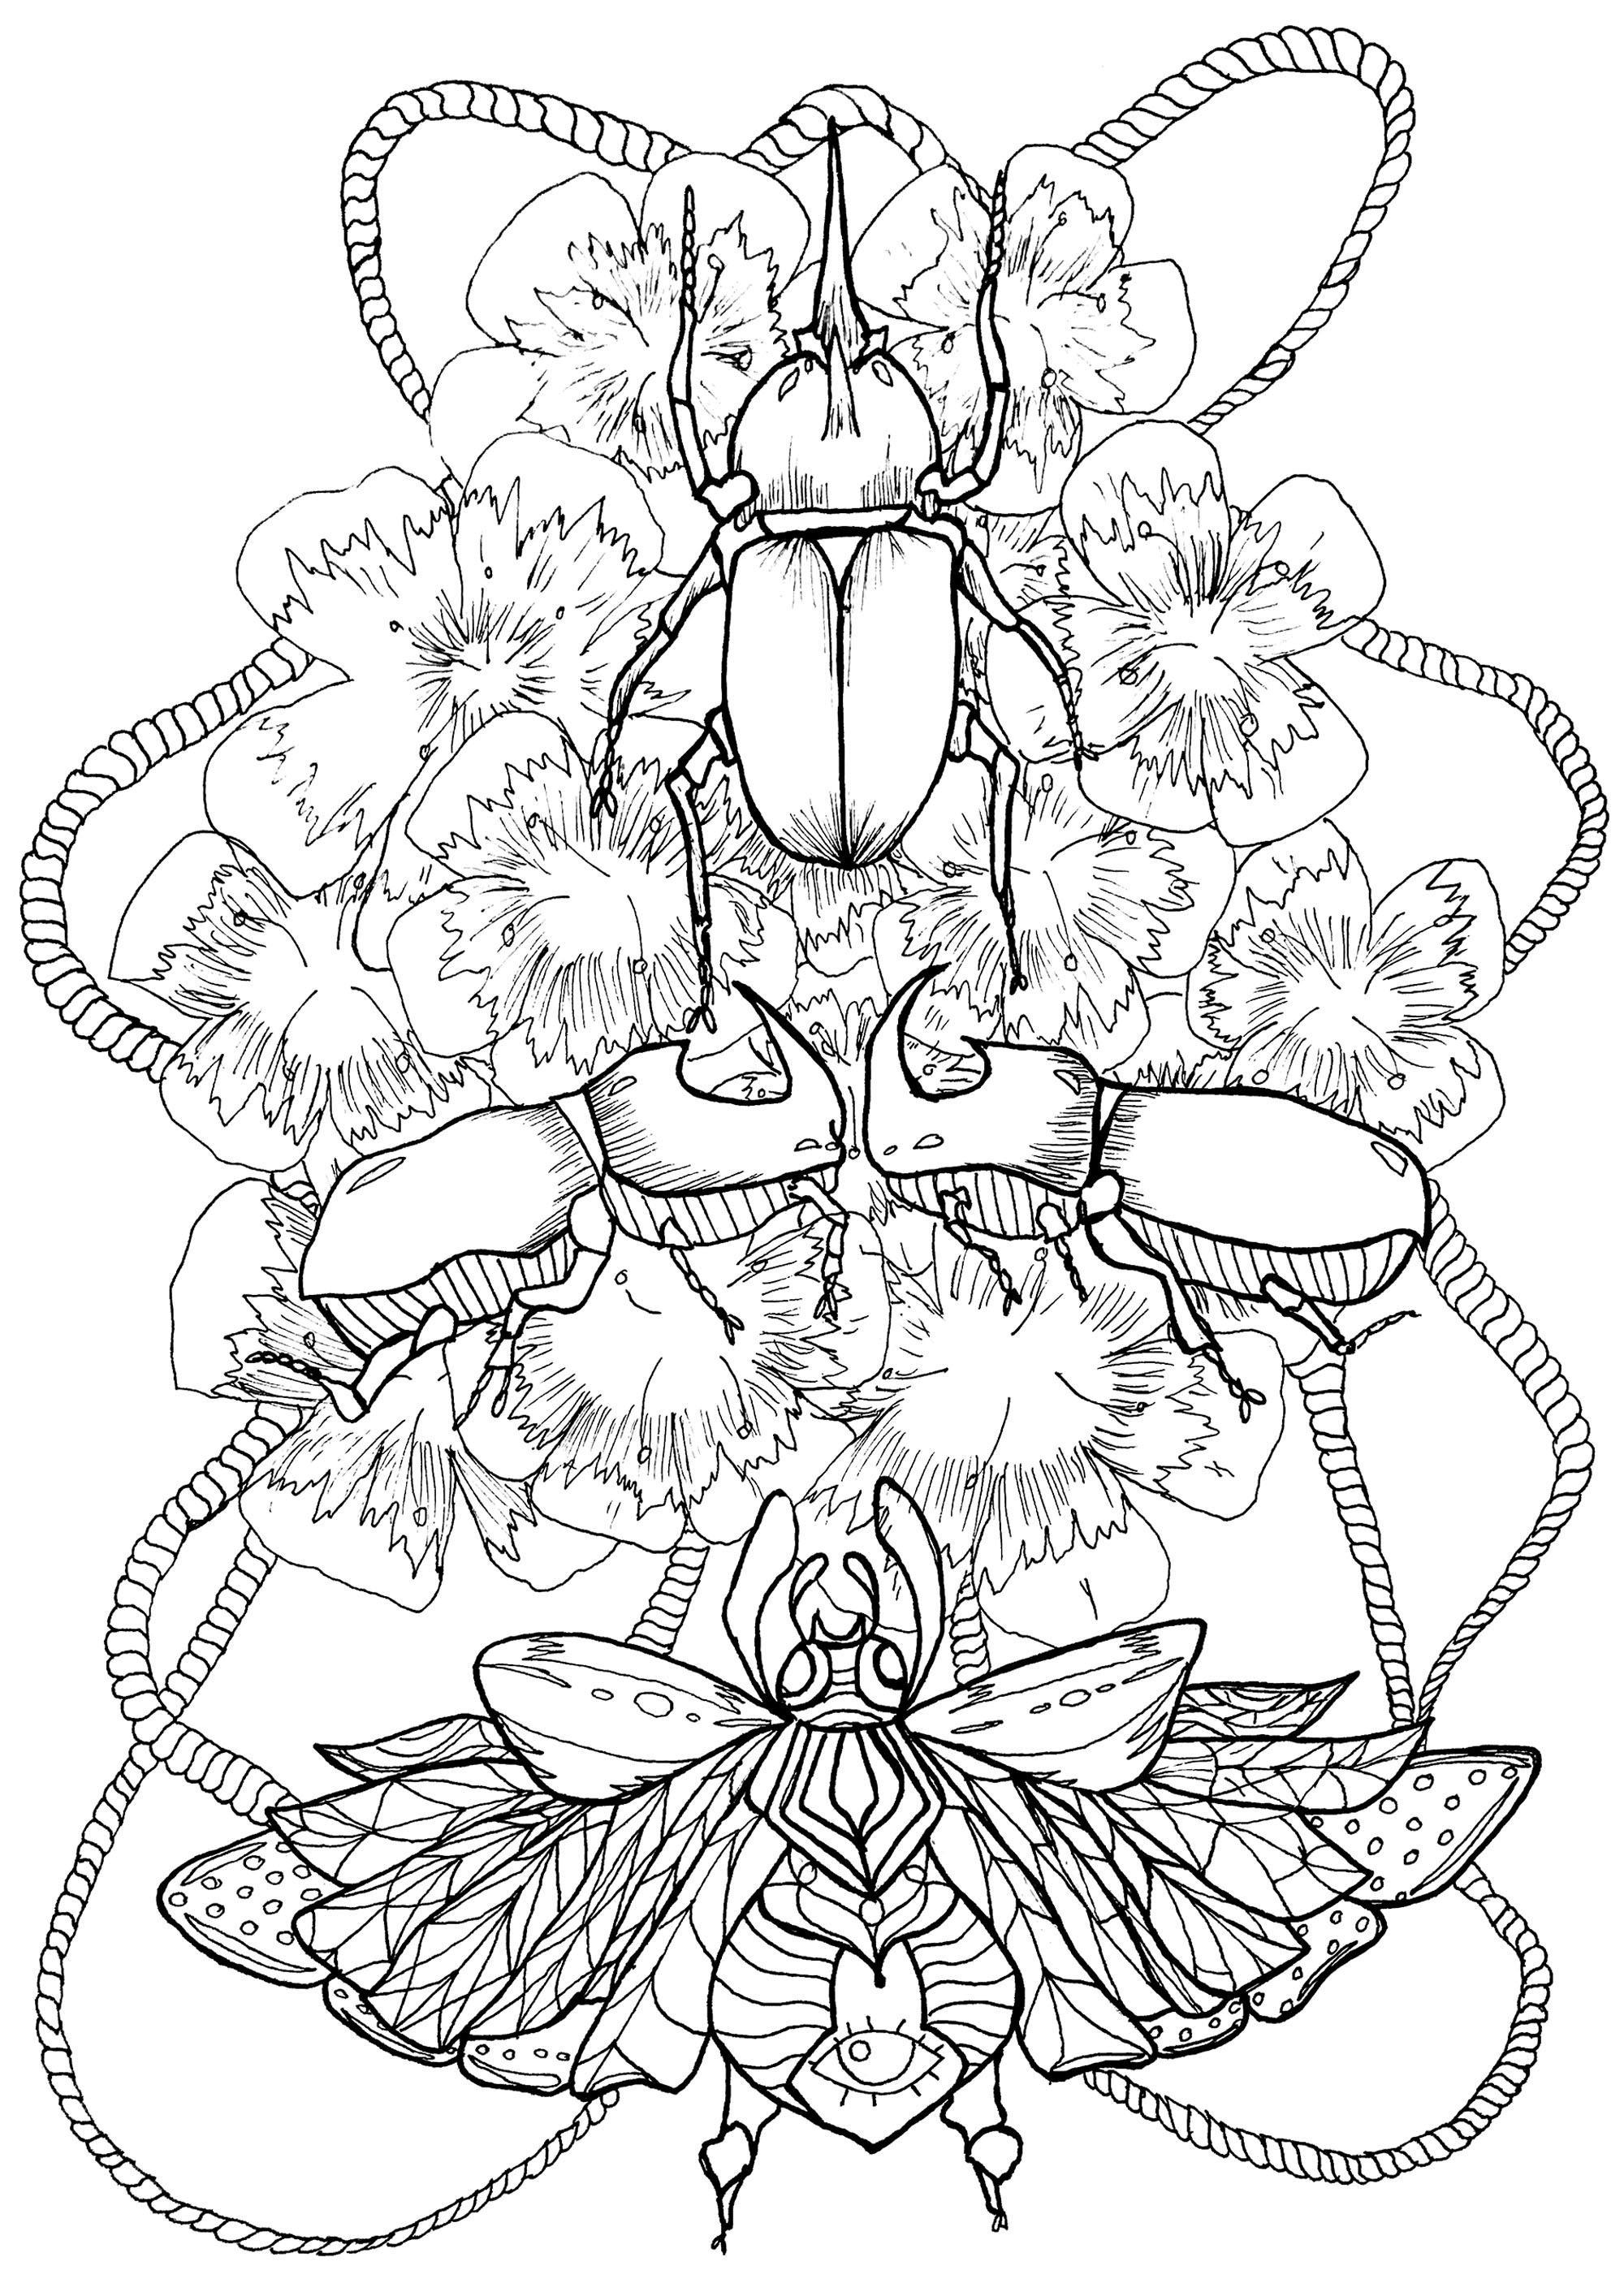 Nice coloring page mixing flowers and beetles, surrounded by a finely braided rope